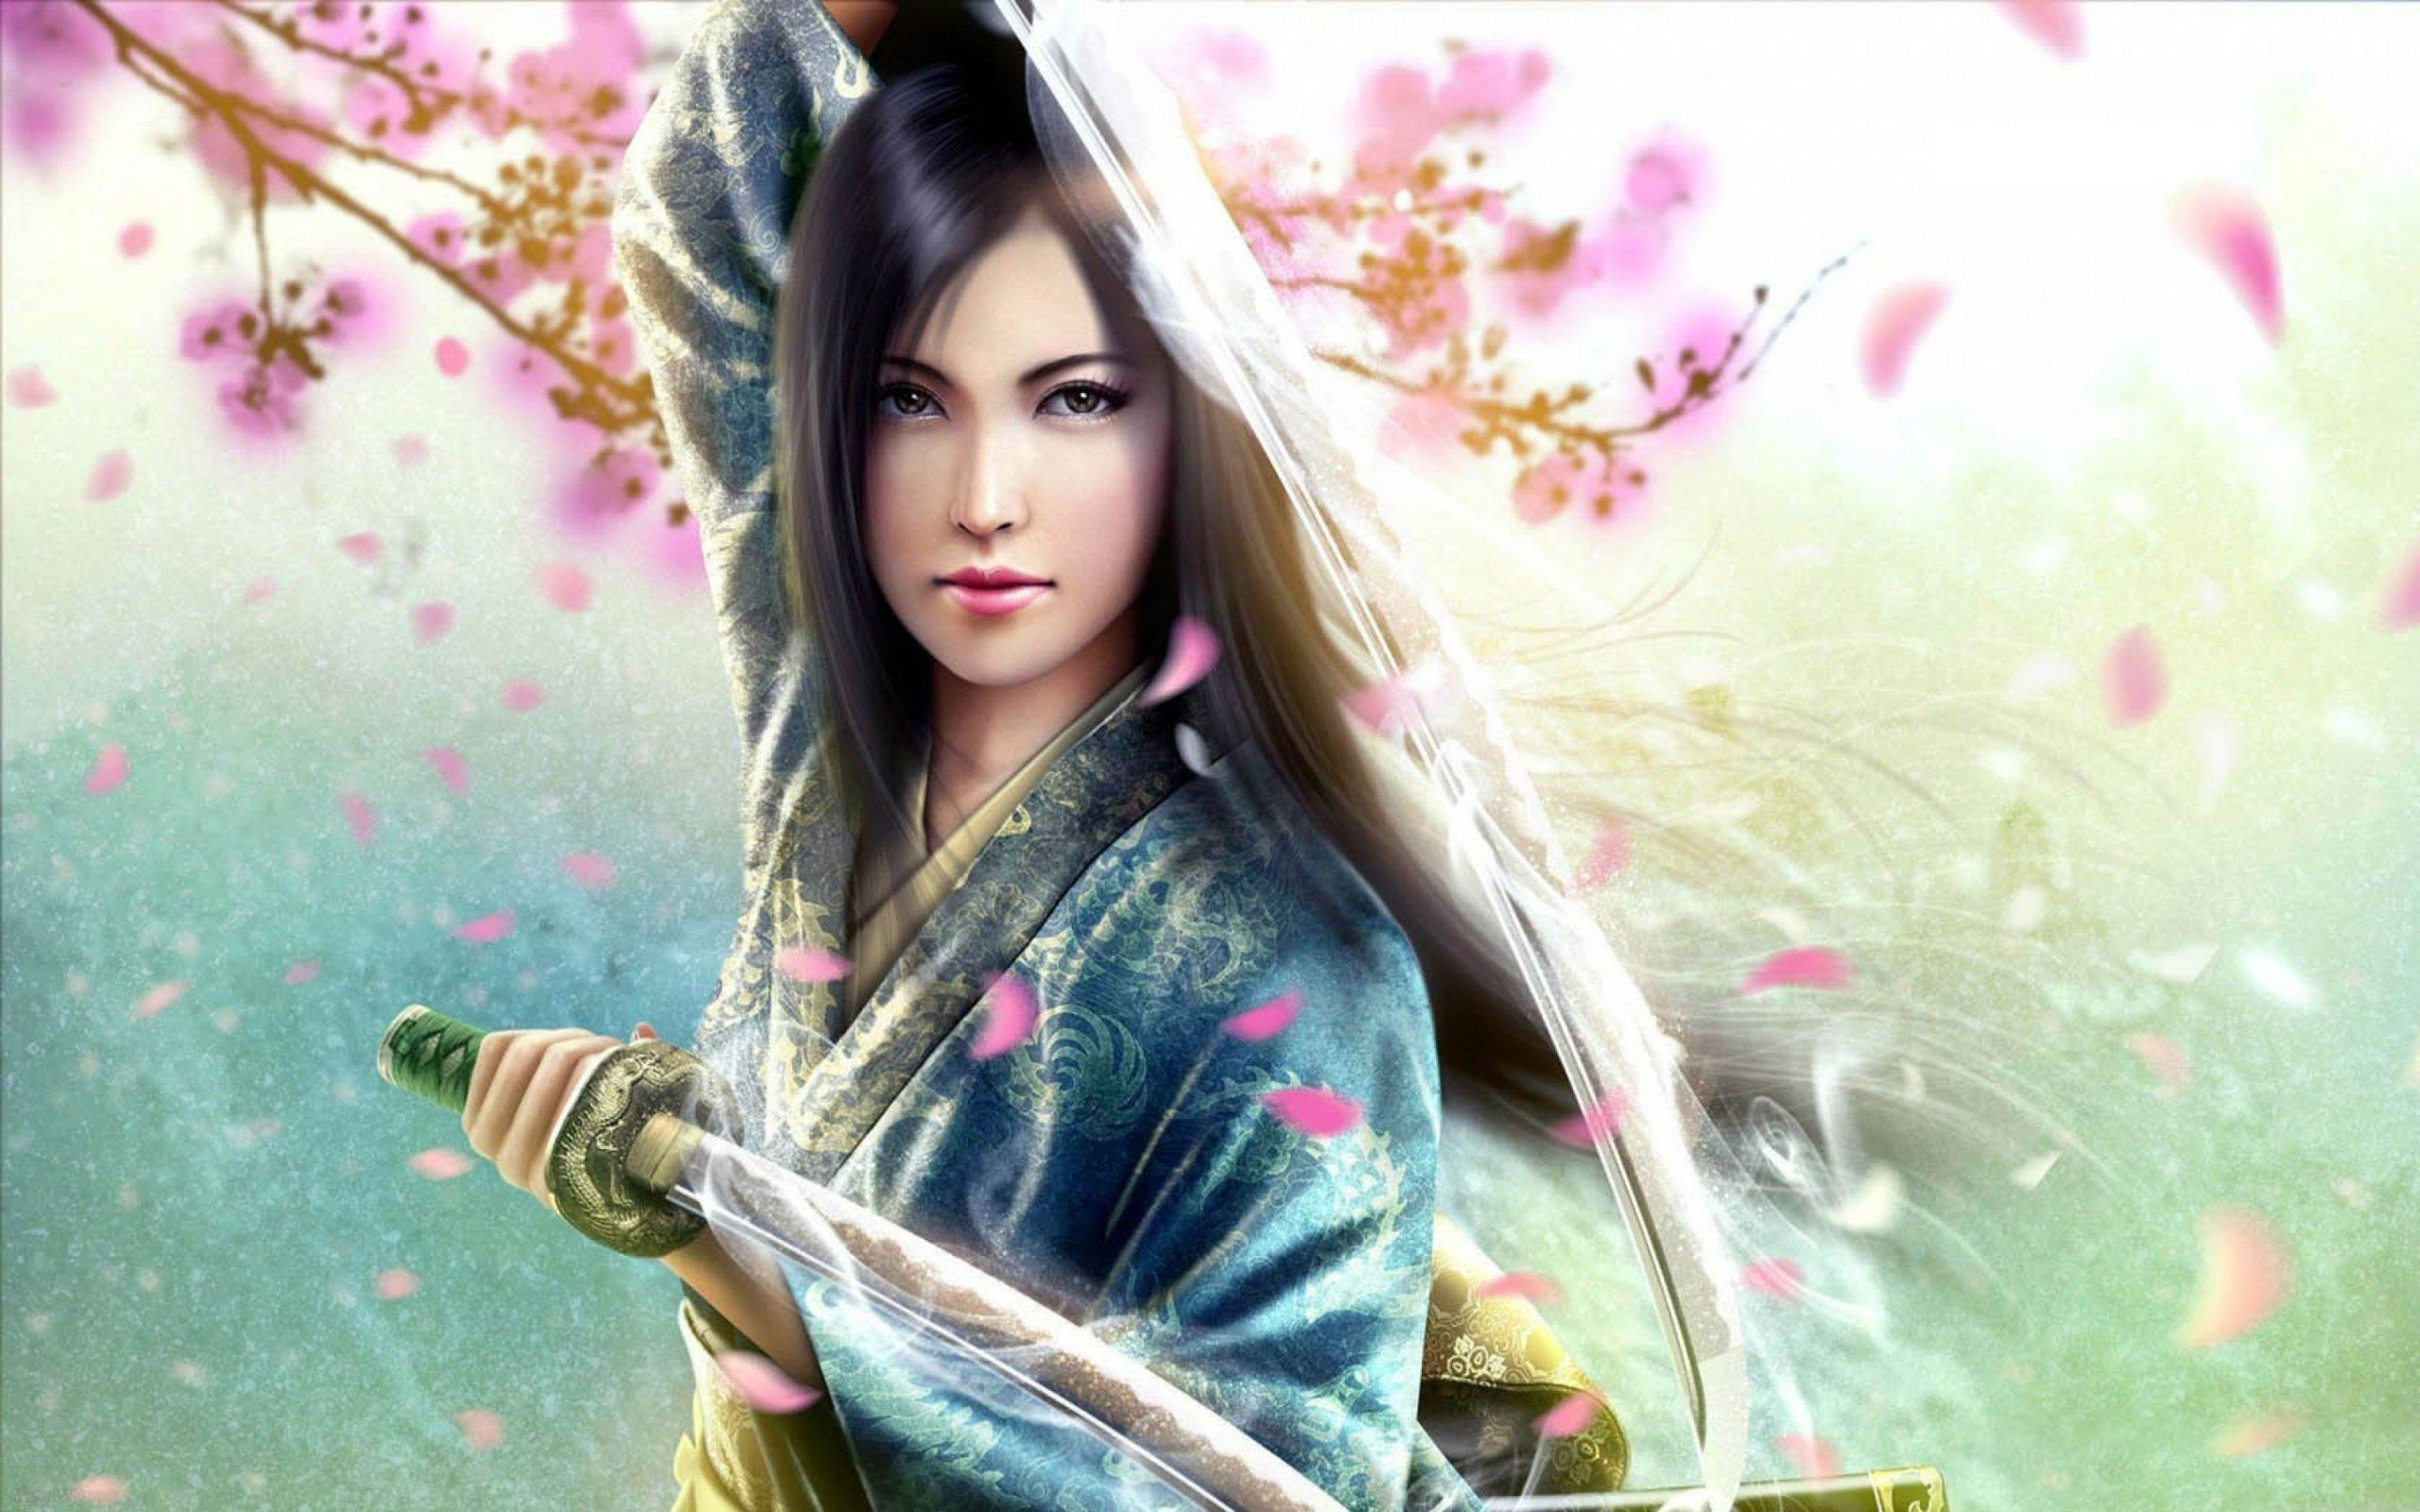 Res: 2560x1600, Samurai Girl Female Warrior Wallpaper HD: You can get most recent and also  Hd Awesome and Amusing Wallpapers as well as Quotes, Memes, Bollywood  Wallpapers, ...